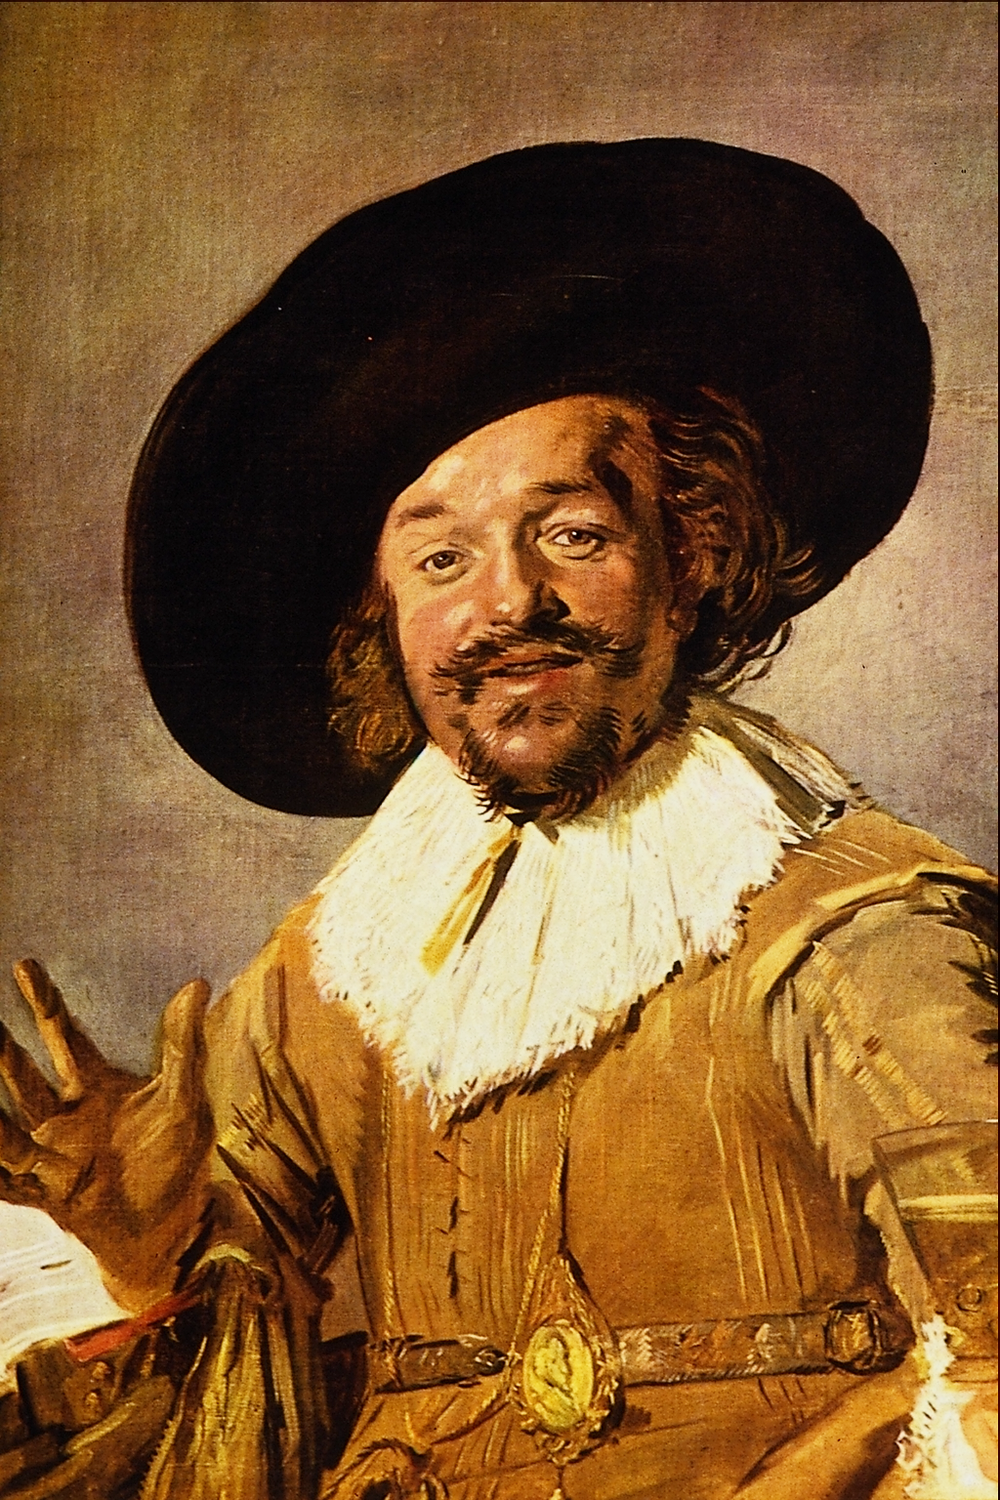 Frans Hals, The Jolly Toper, c. 1628-1630